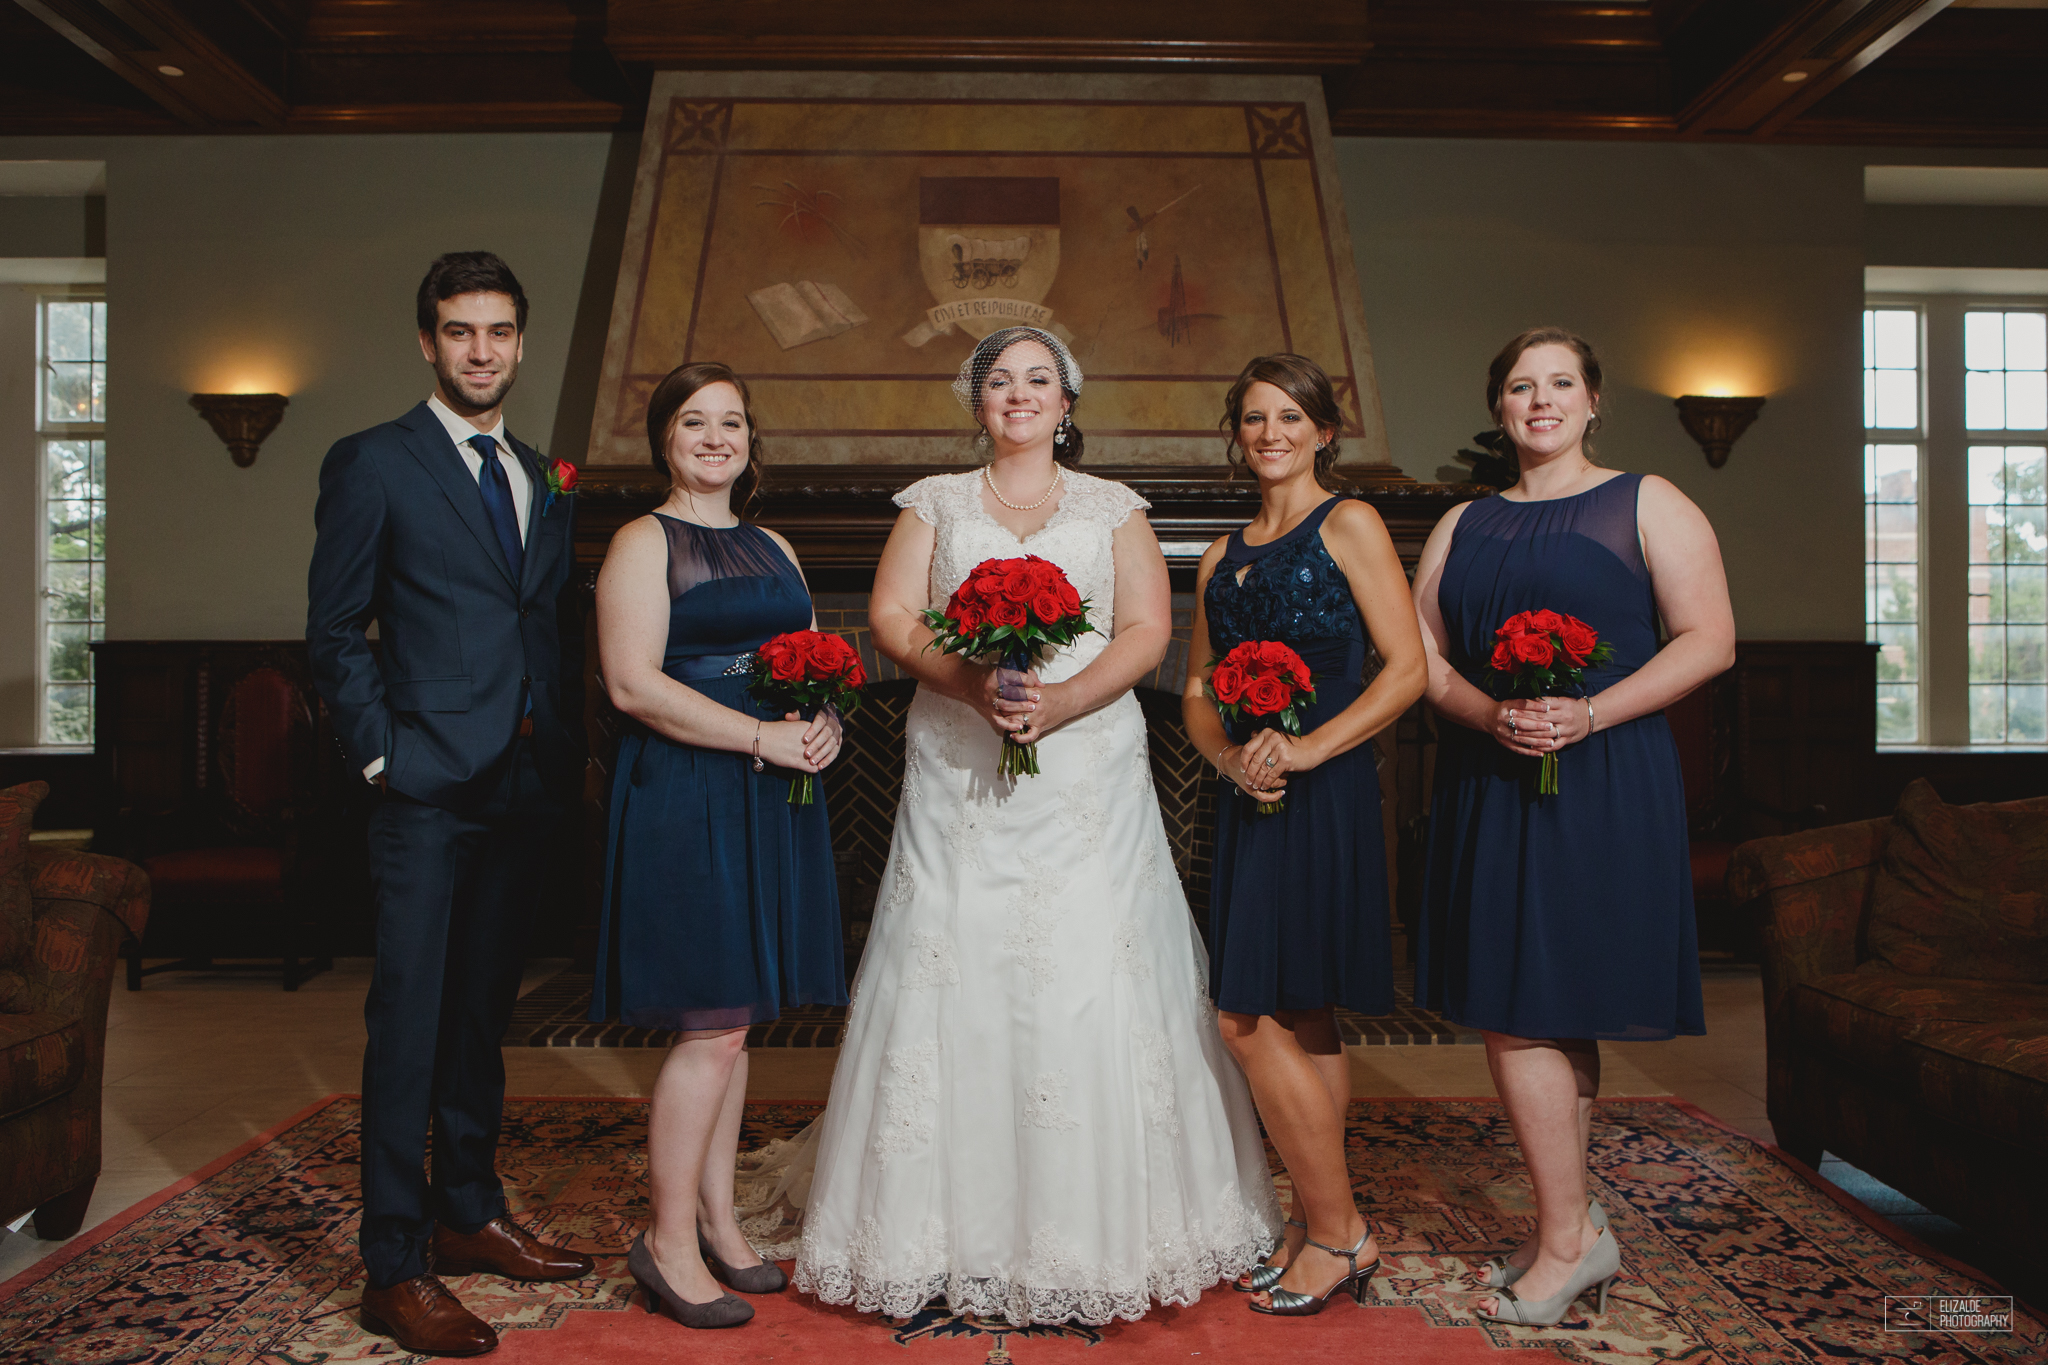 University of Oklahoma_UO_Wedding Photographer_Wedding photography_DFW Wedding Photographer_Elizalde photography_Denton Wedding Photograper  (36 of 100).jpg